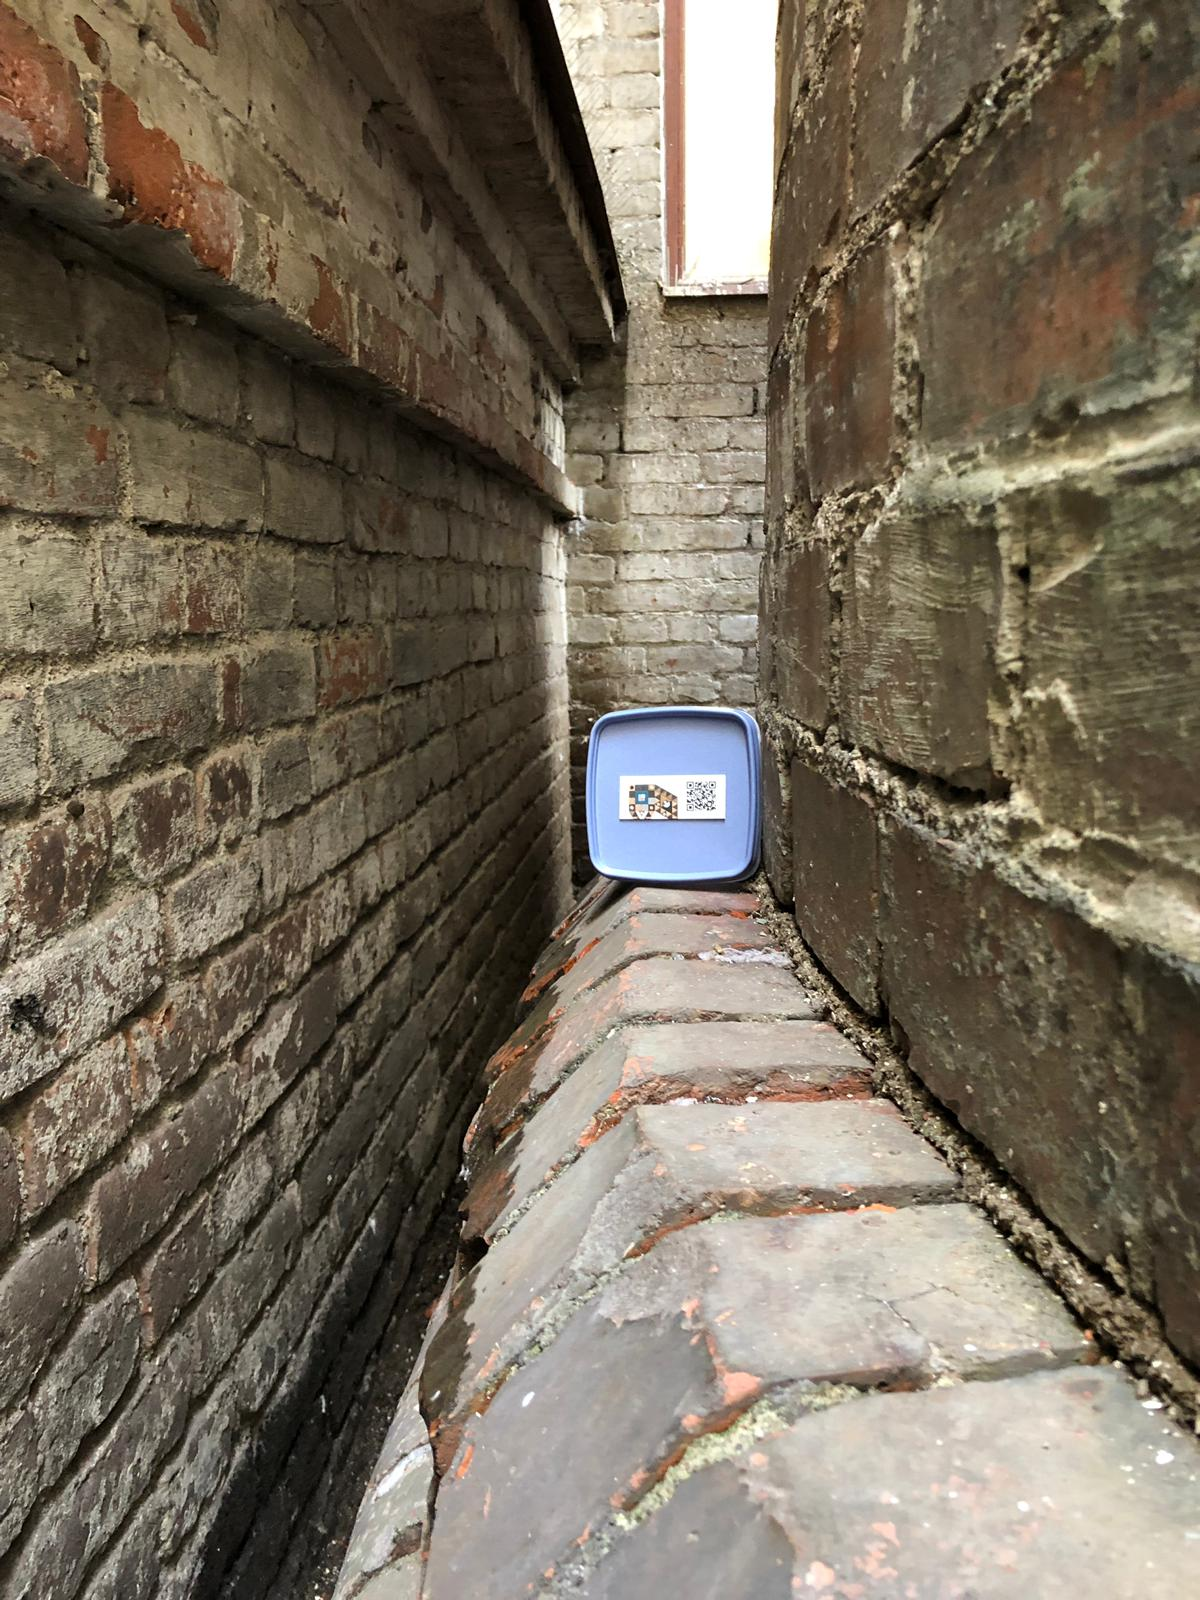 One of the four geocaches hidden in Finlayson art area